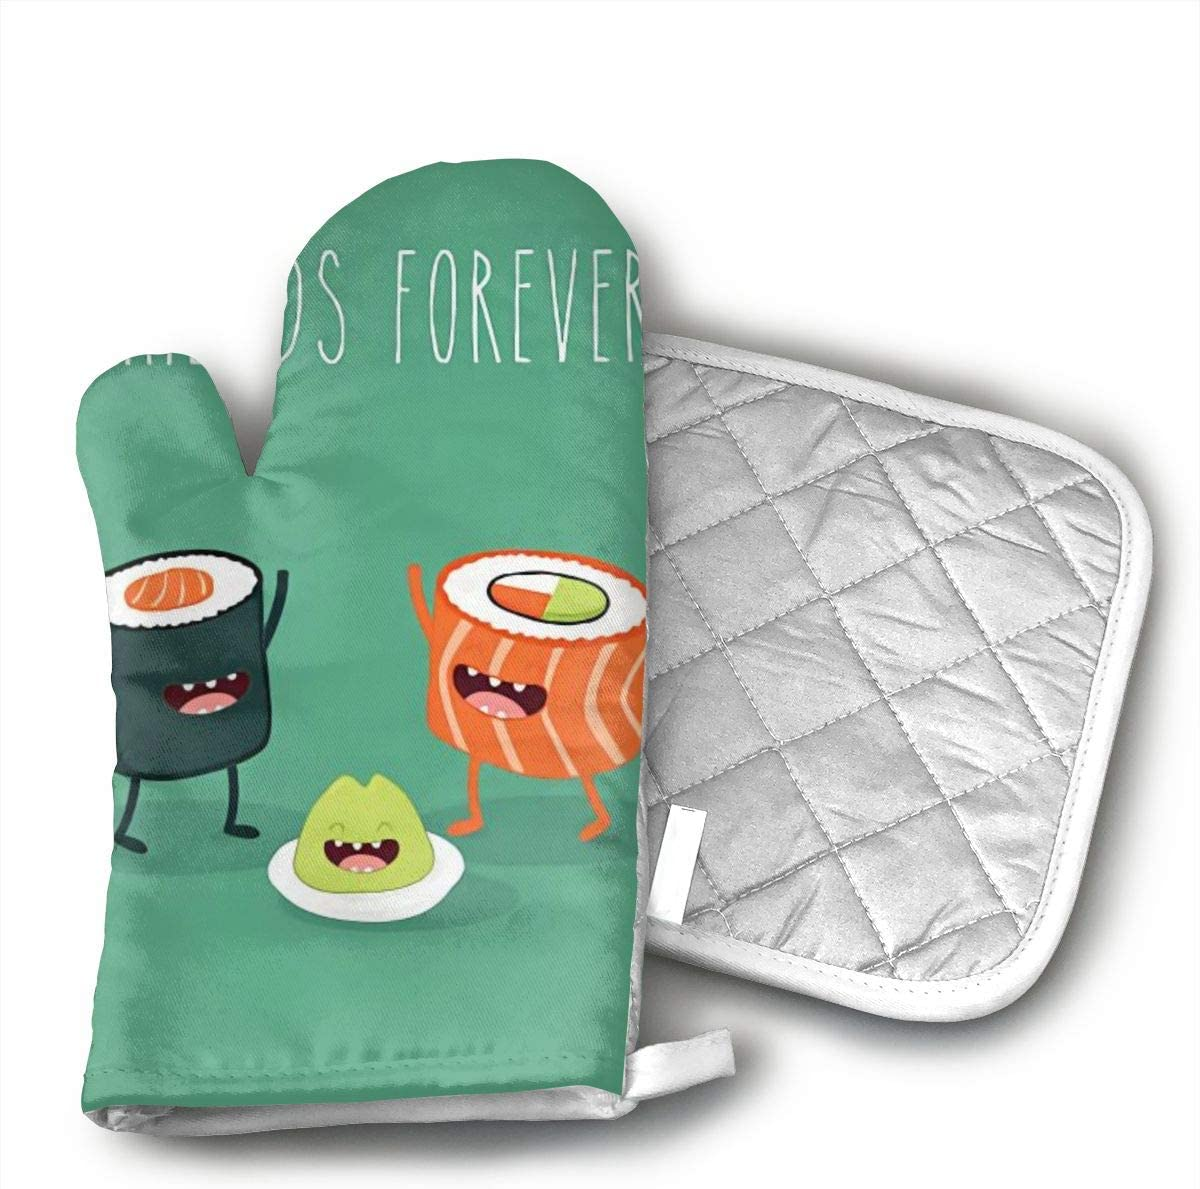 MEILVWEN Sushi Clip Art Oven Mitt and Pot Holder Set,Heat Resistant for Cooking and Baking Kitchen Gift